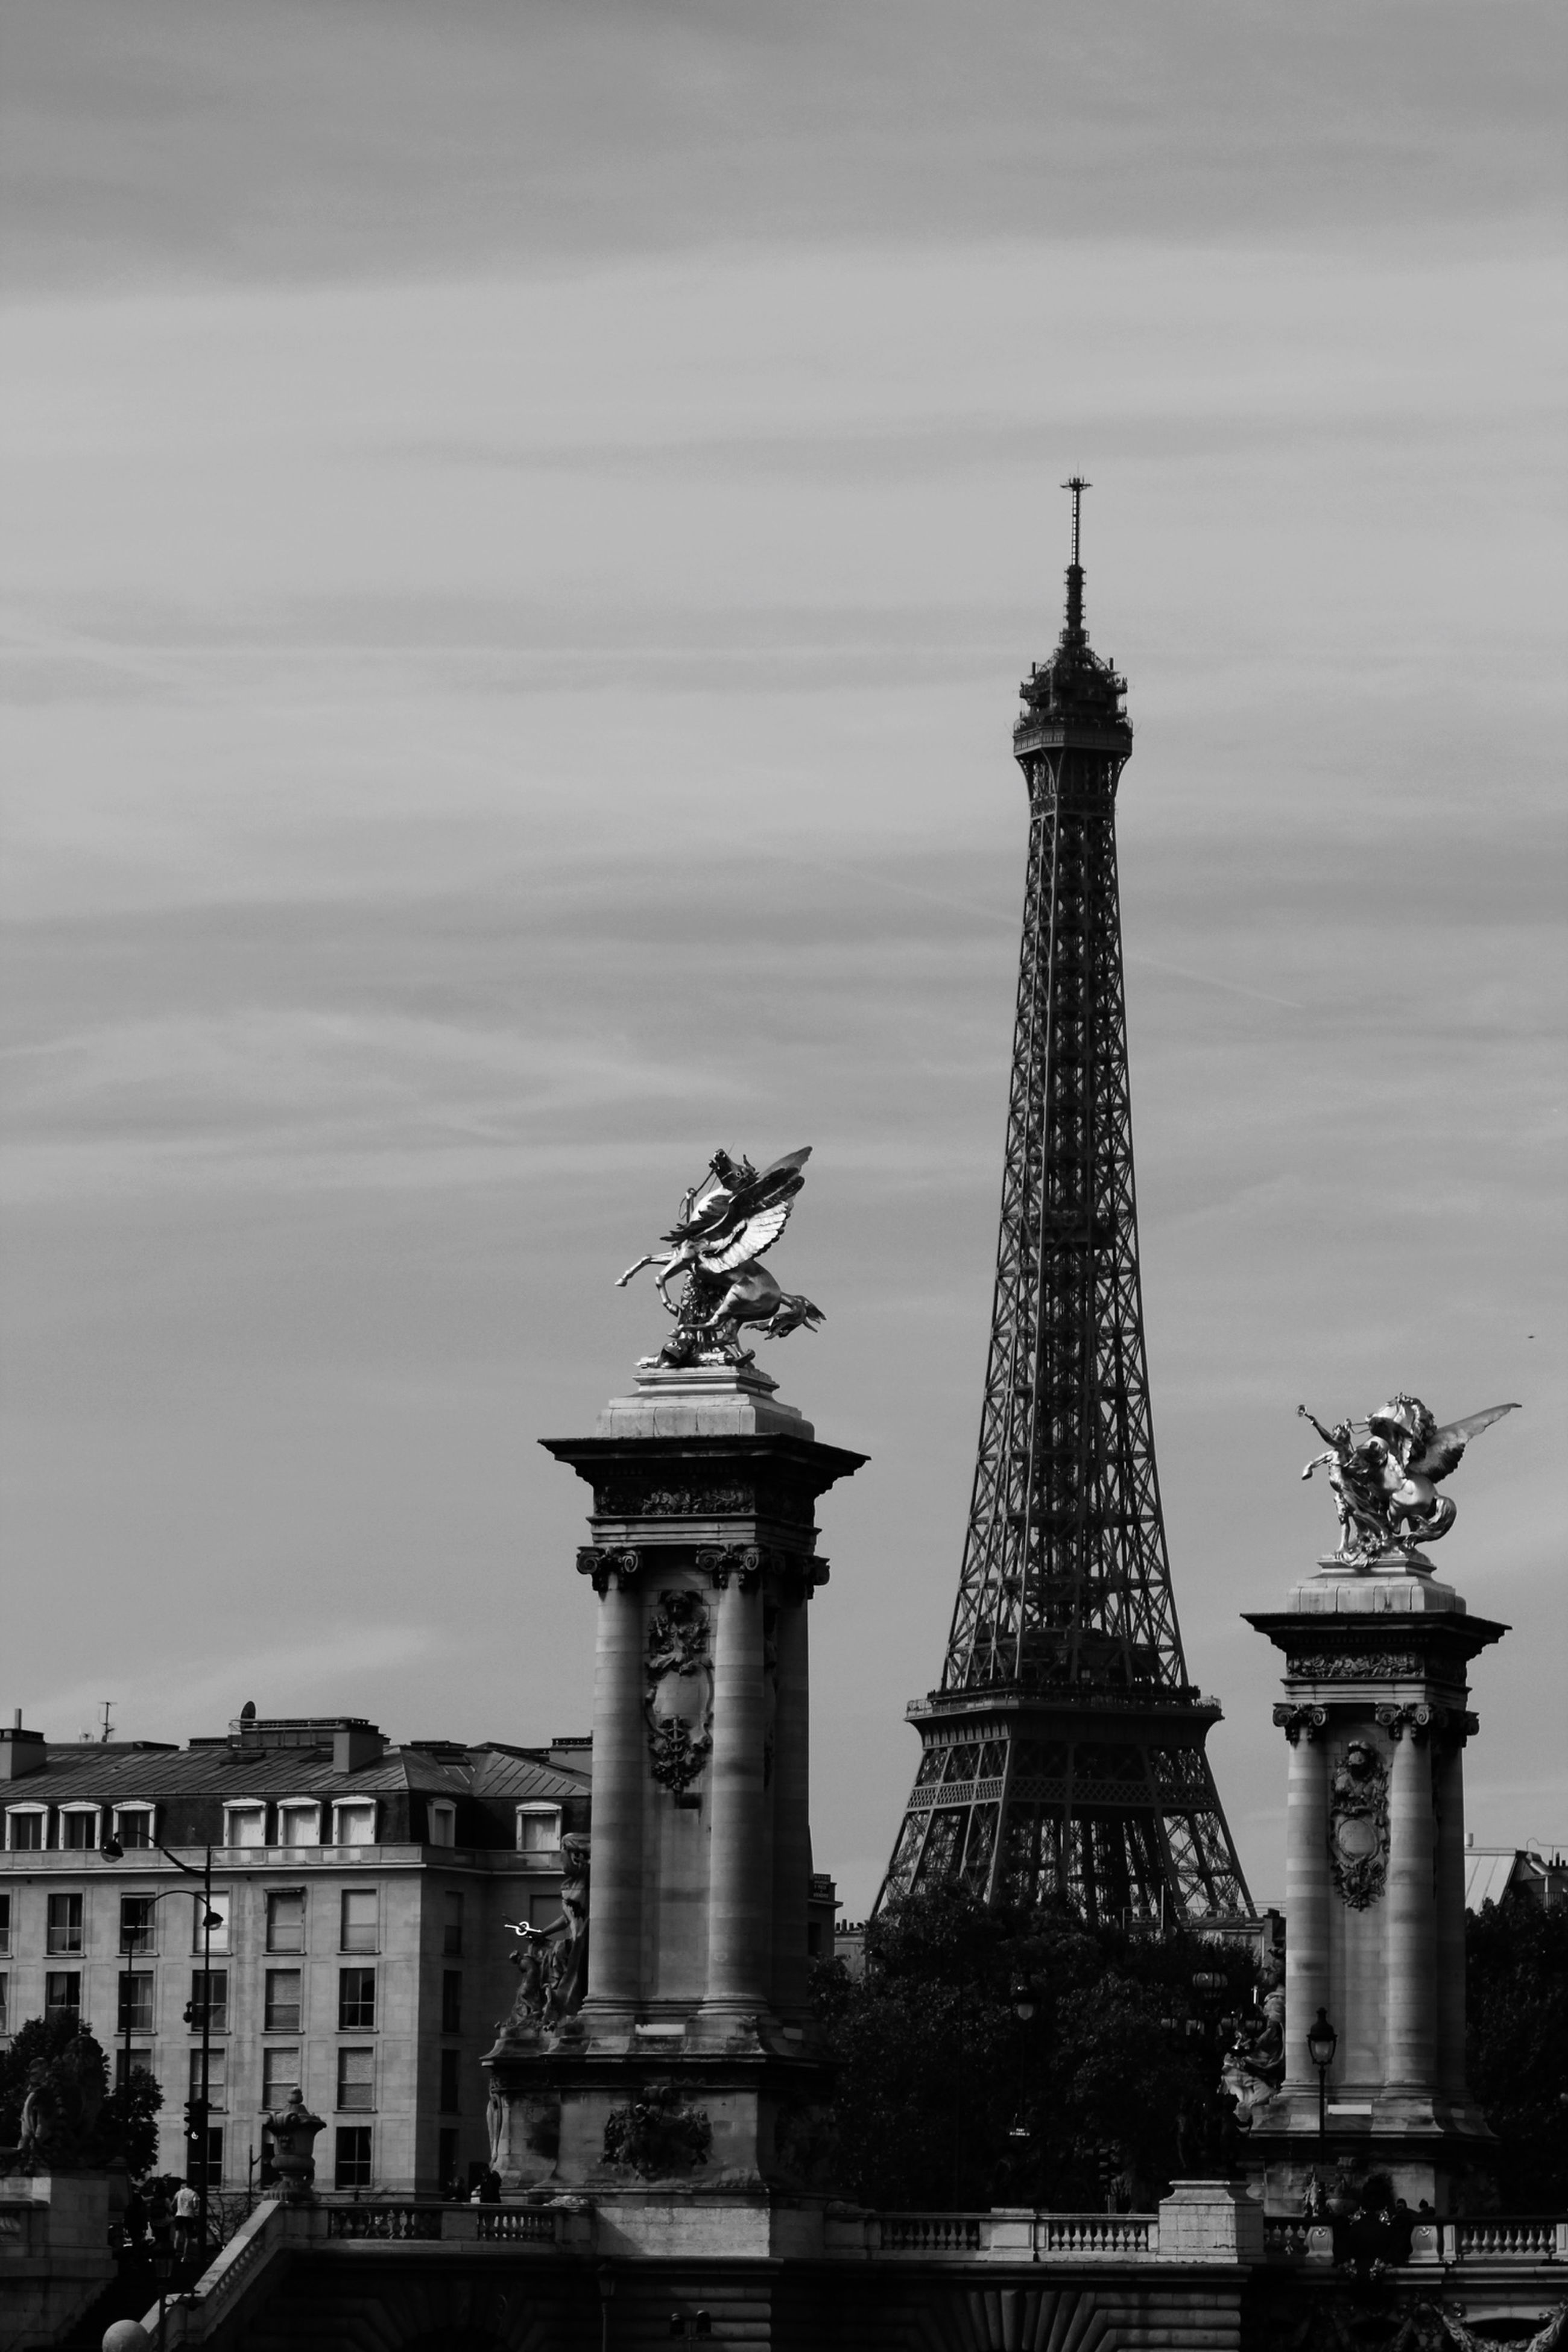 architecture, built structure, building exterior, famous place, low angle view, statue, international landmark, capital cities, sculpture, travel destinations, sky, tower, city, human representation, travel, art and craft, tall - high, tourism, art, history